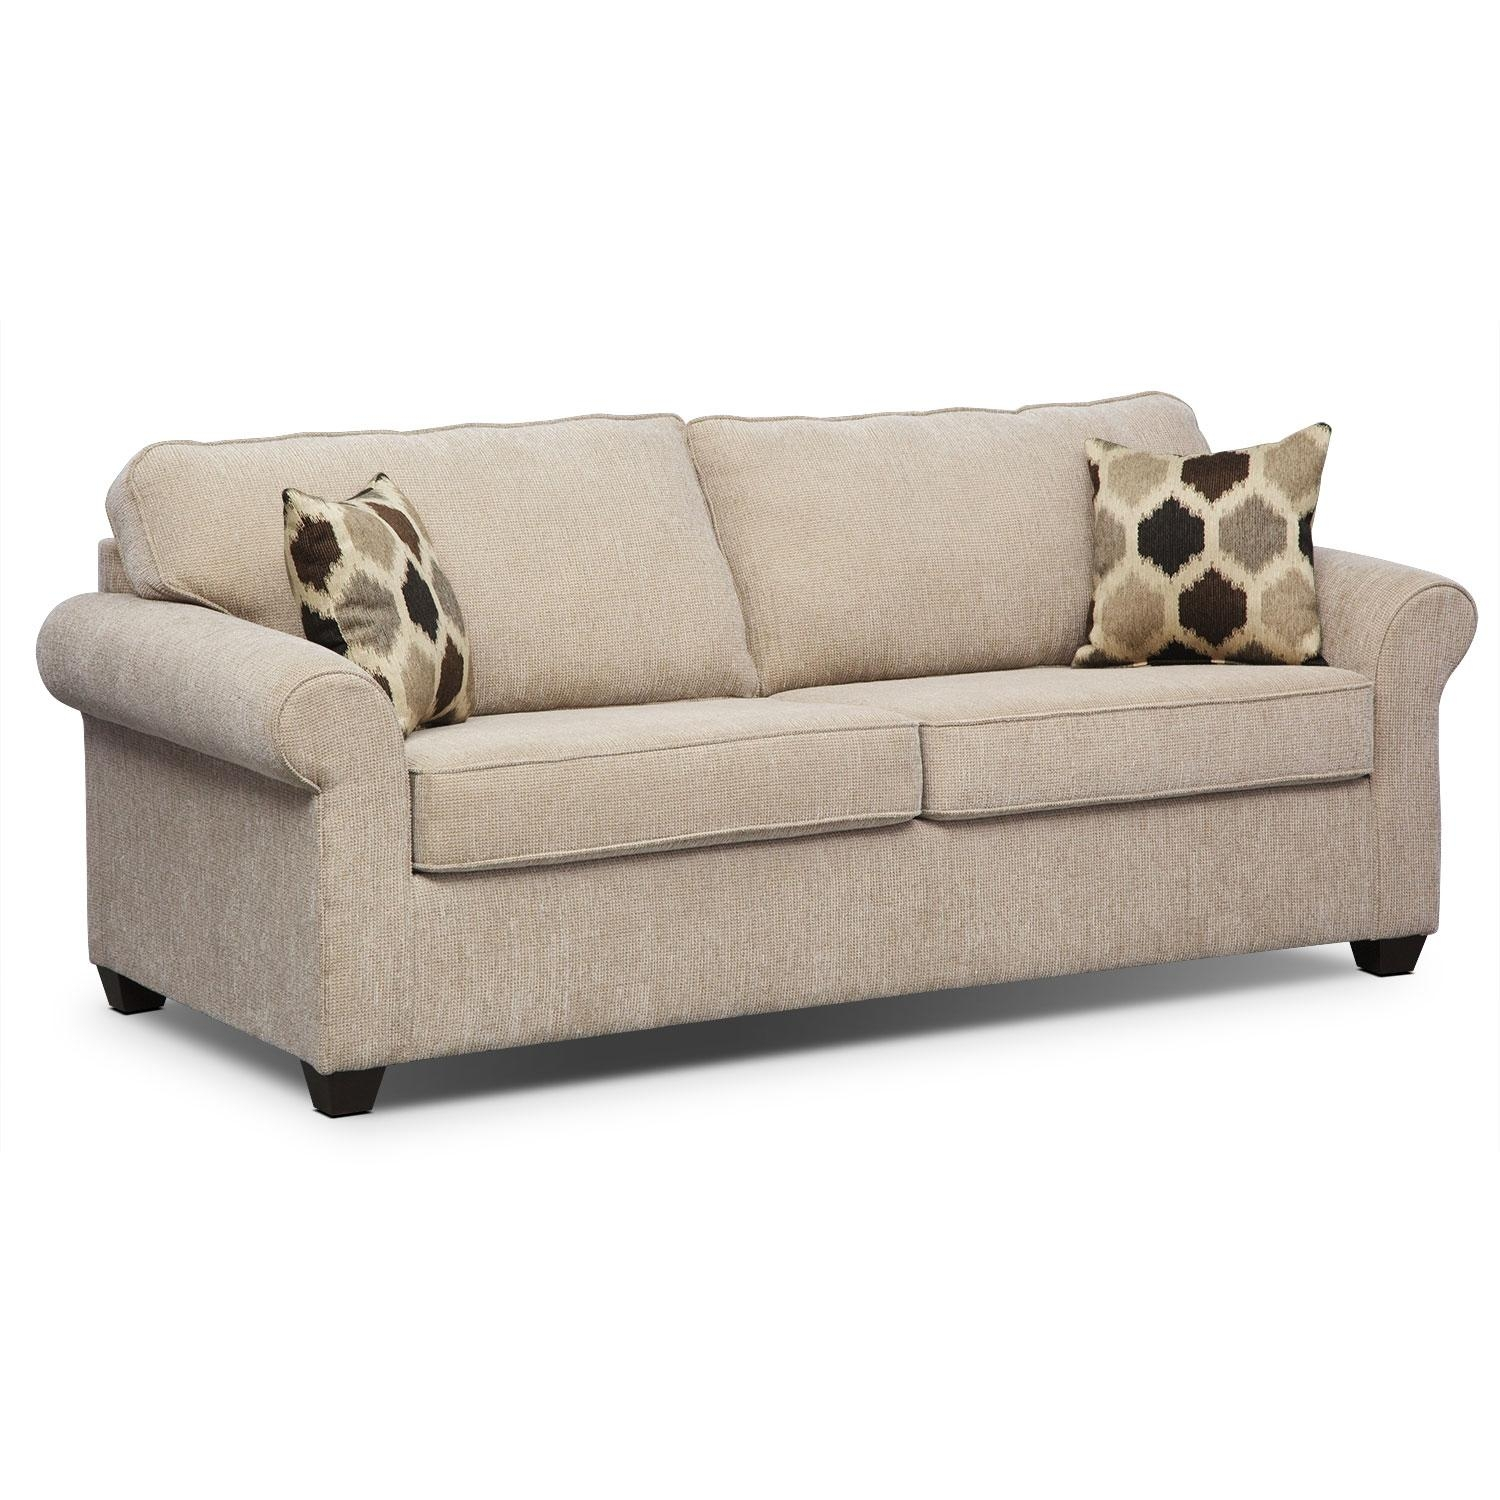 best queen sleeper sofa 2017 professional cleaning cost london 20 collection of convertible sofas ideas